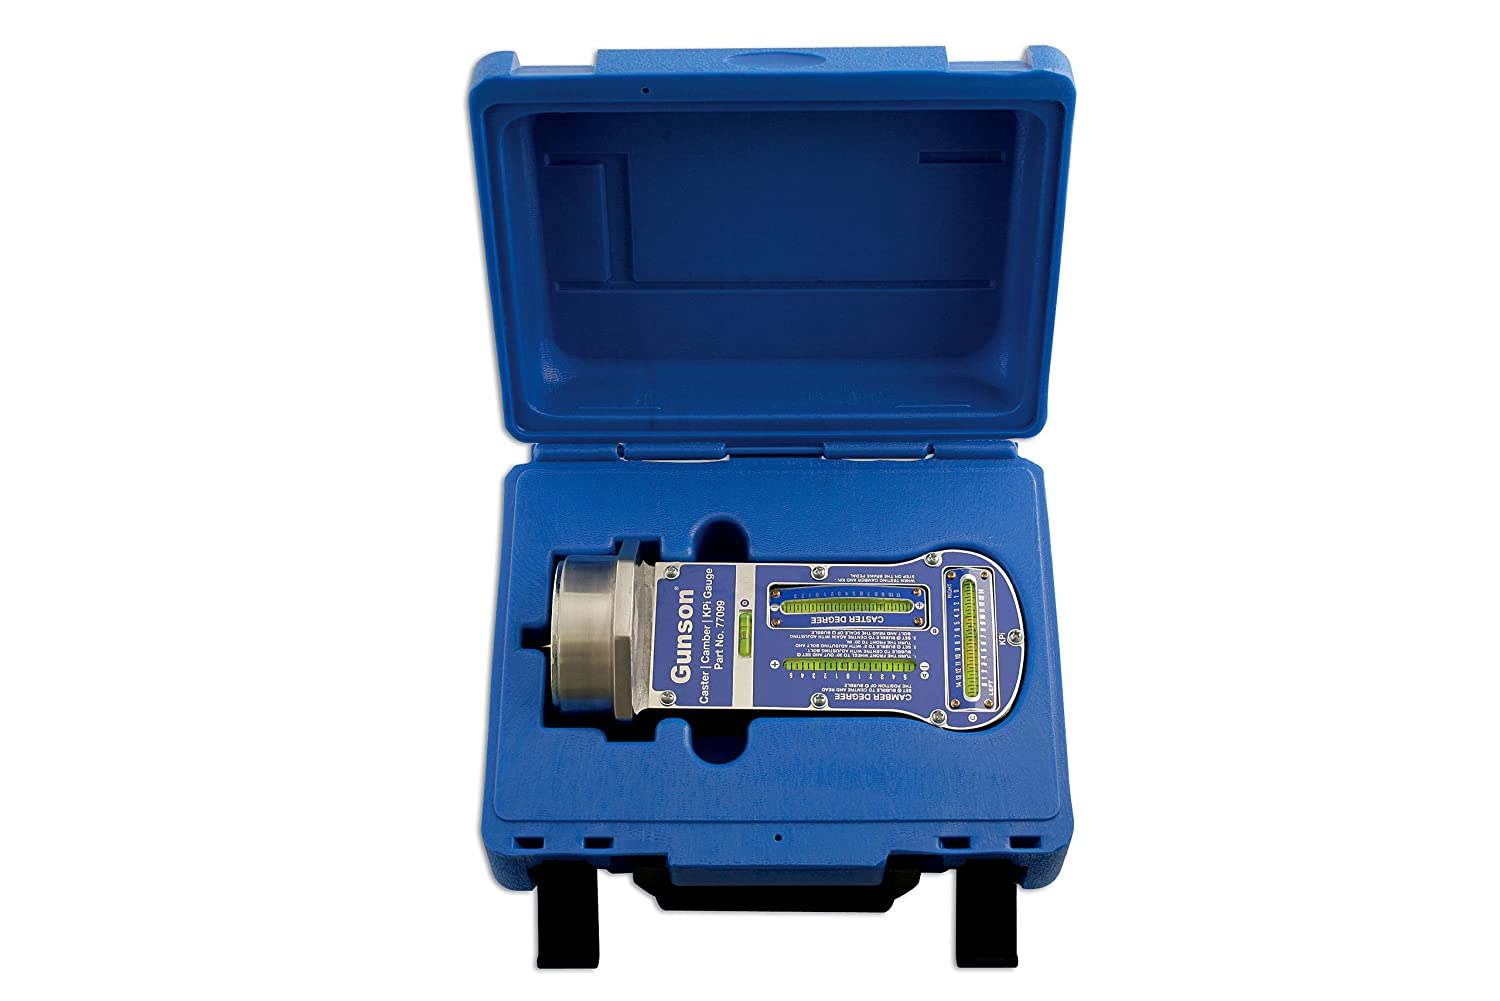 Laser 77099 Trakrite Magnetic Camber/ Castor/ Kinpin Gauge Tool Connection (EU)